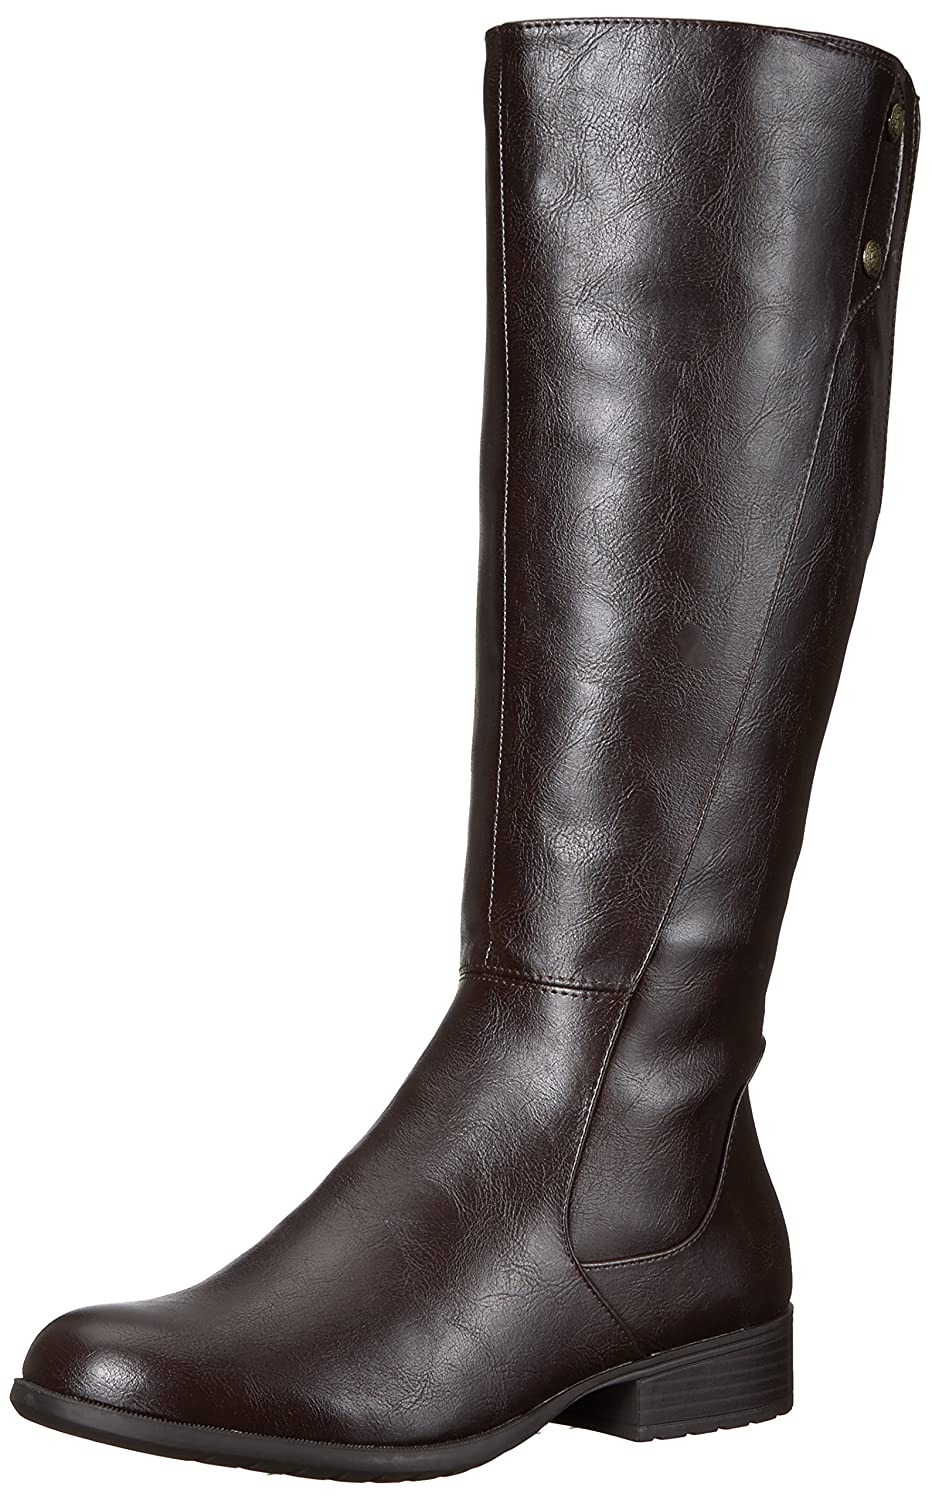 LifeStride Women's 5 Xripley Riding Boot B0733GD25D 5 Women's B(M) US|Dark Brown e71633